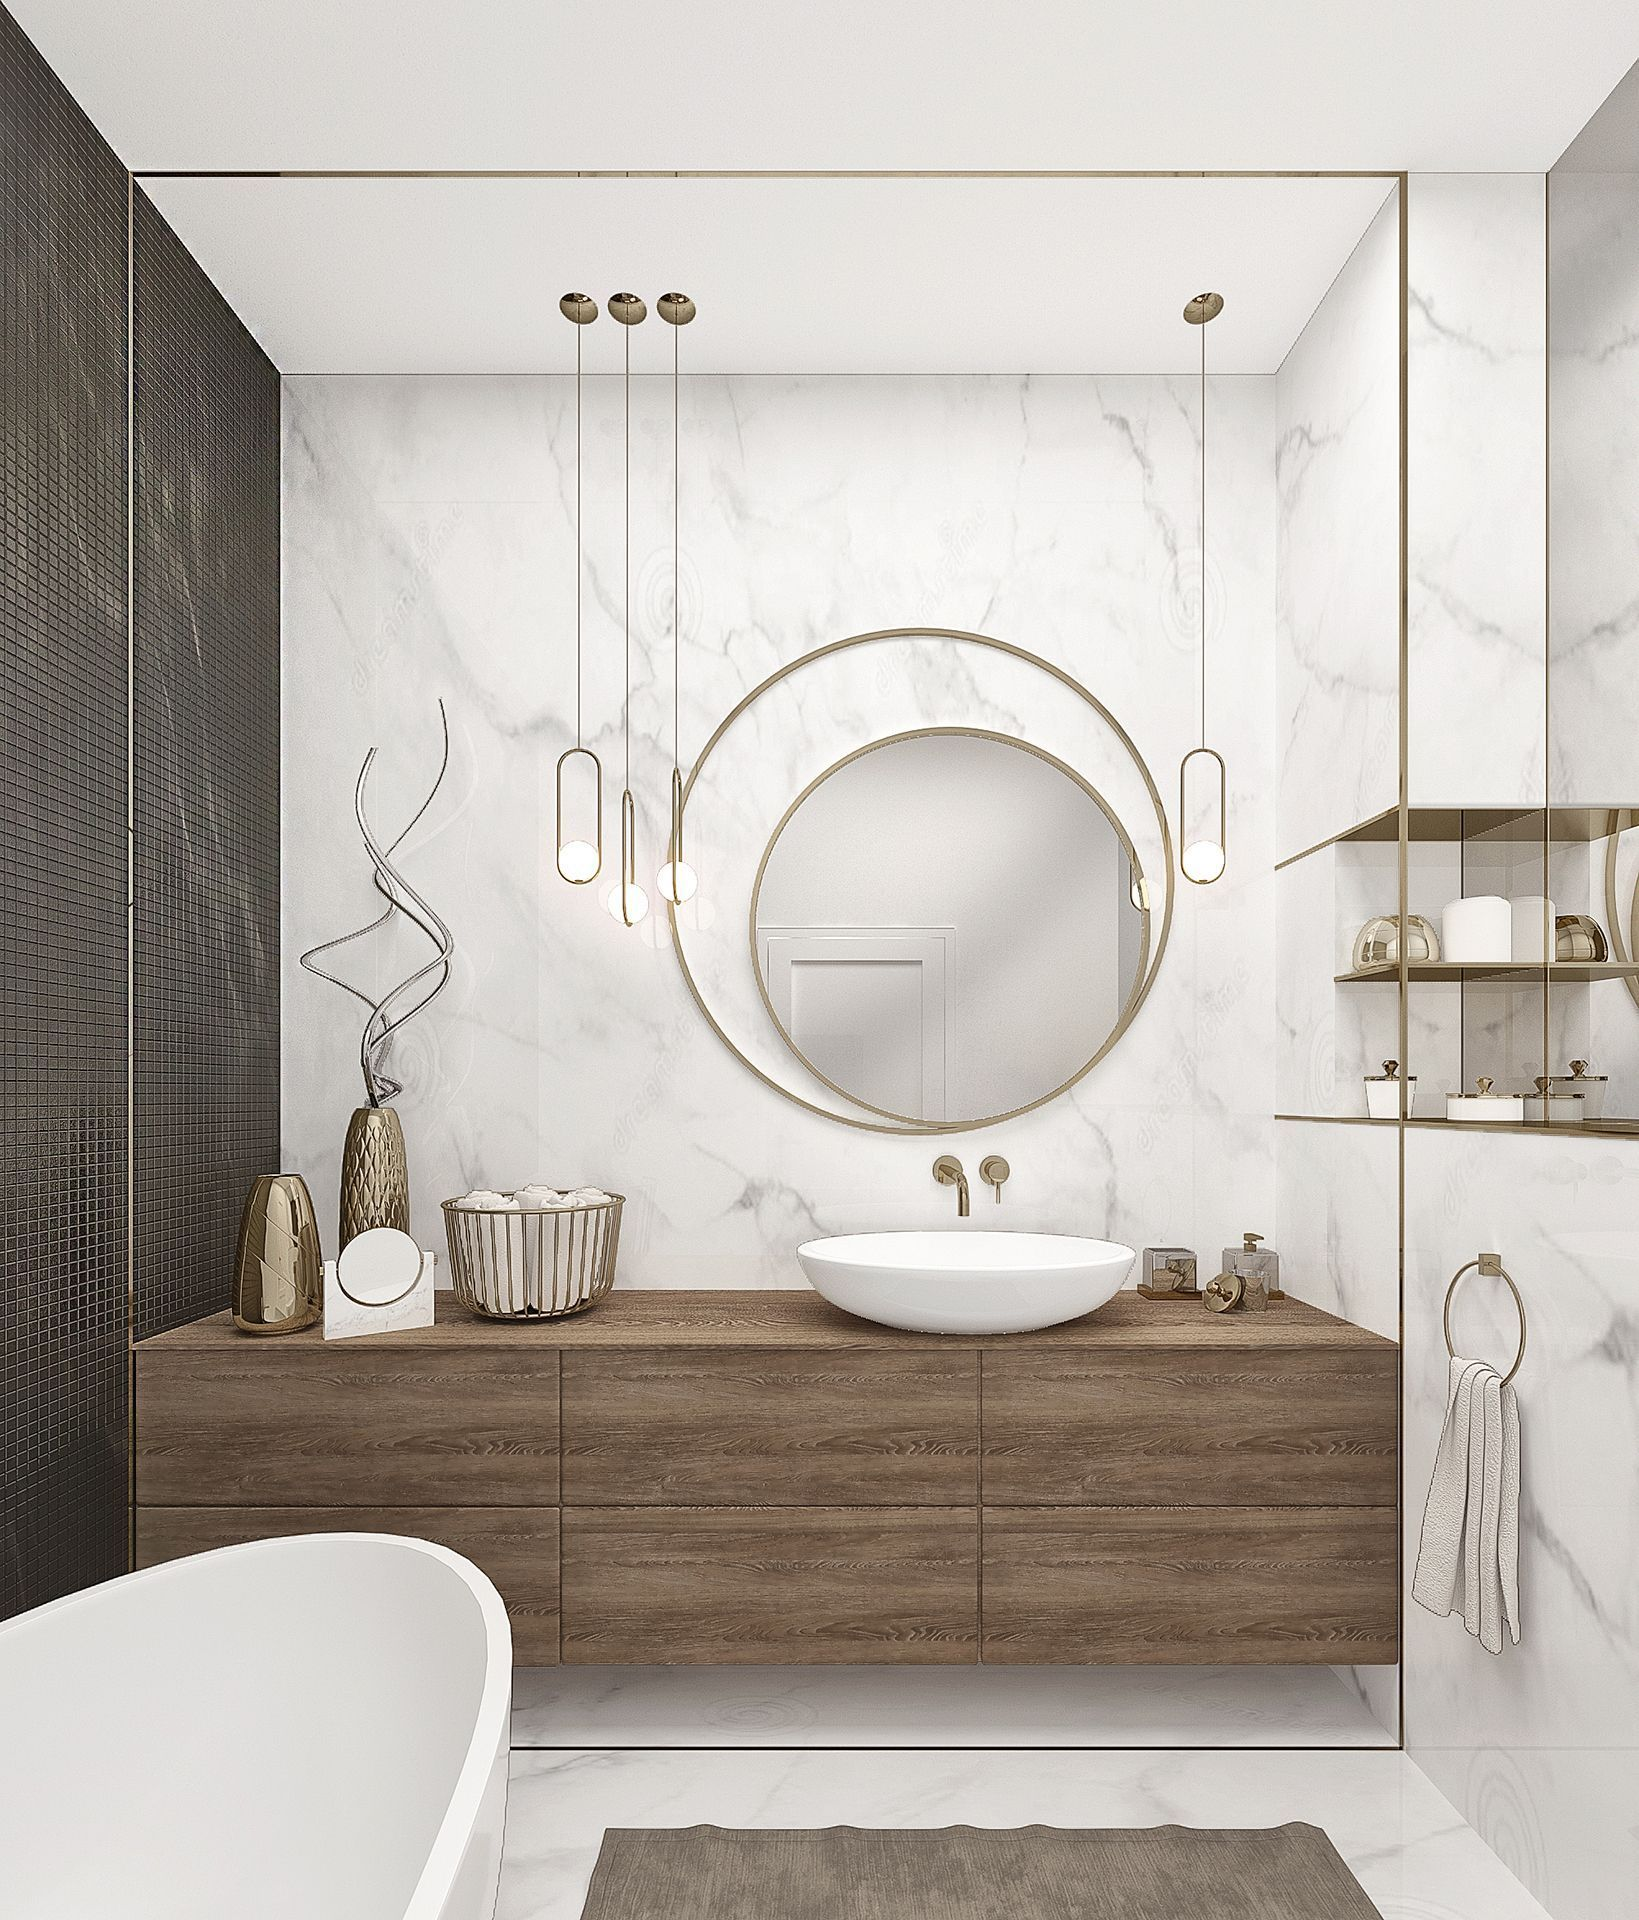 Get the best midcentruy modern mirror inspiration for your interior design project look for more